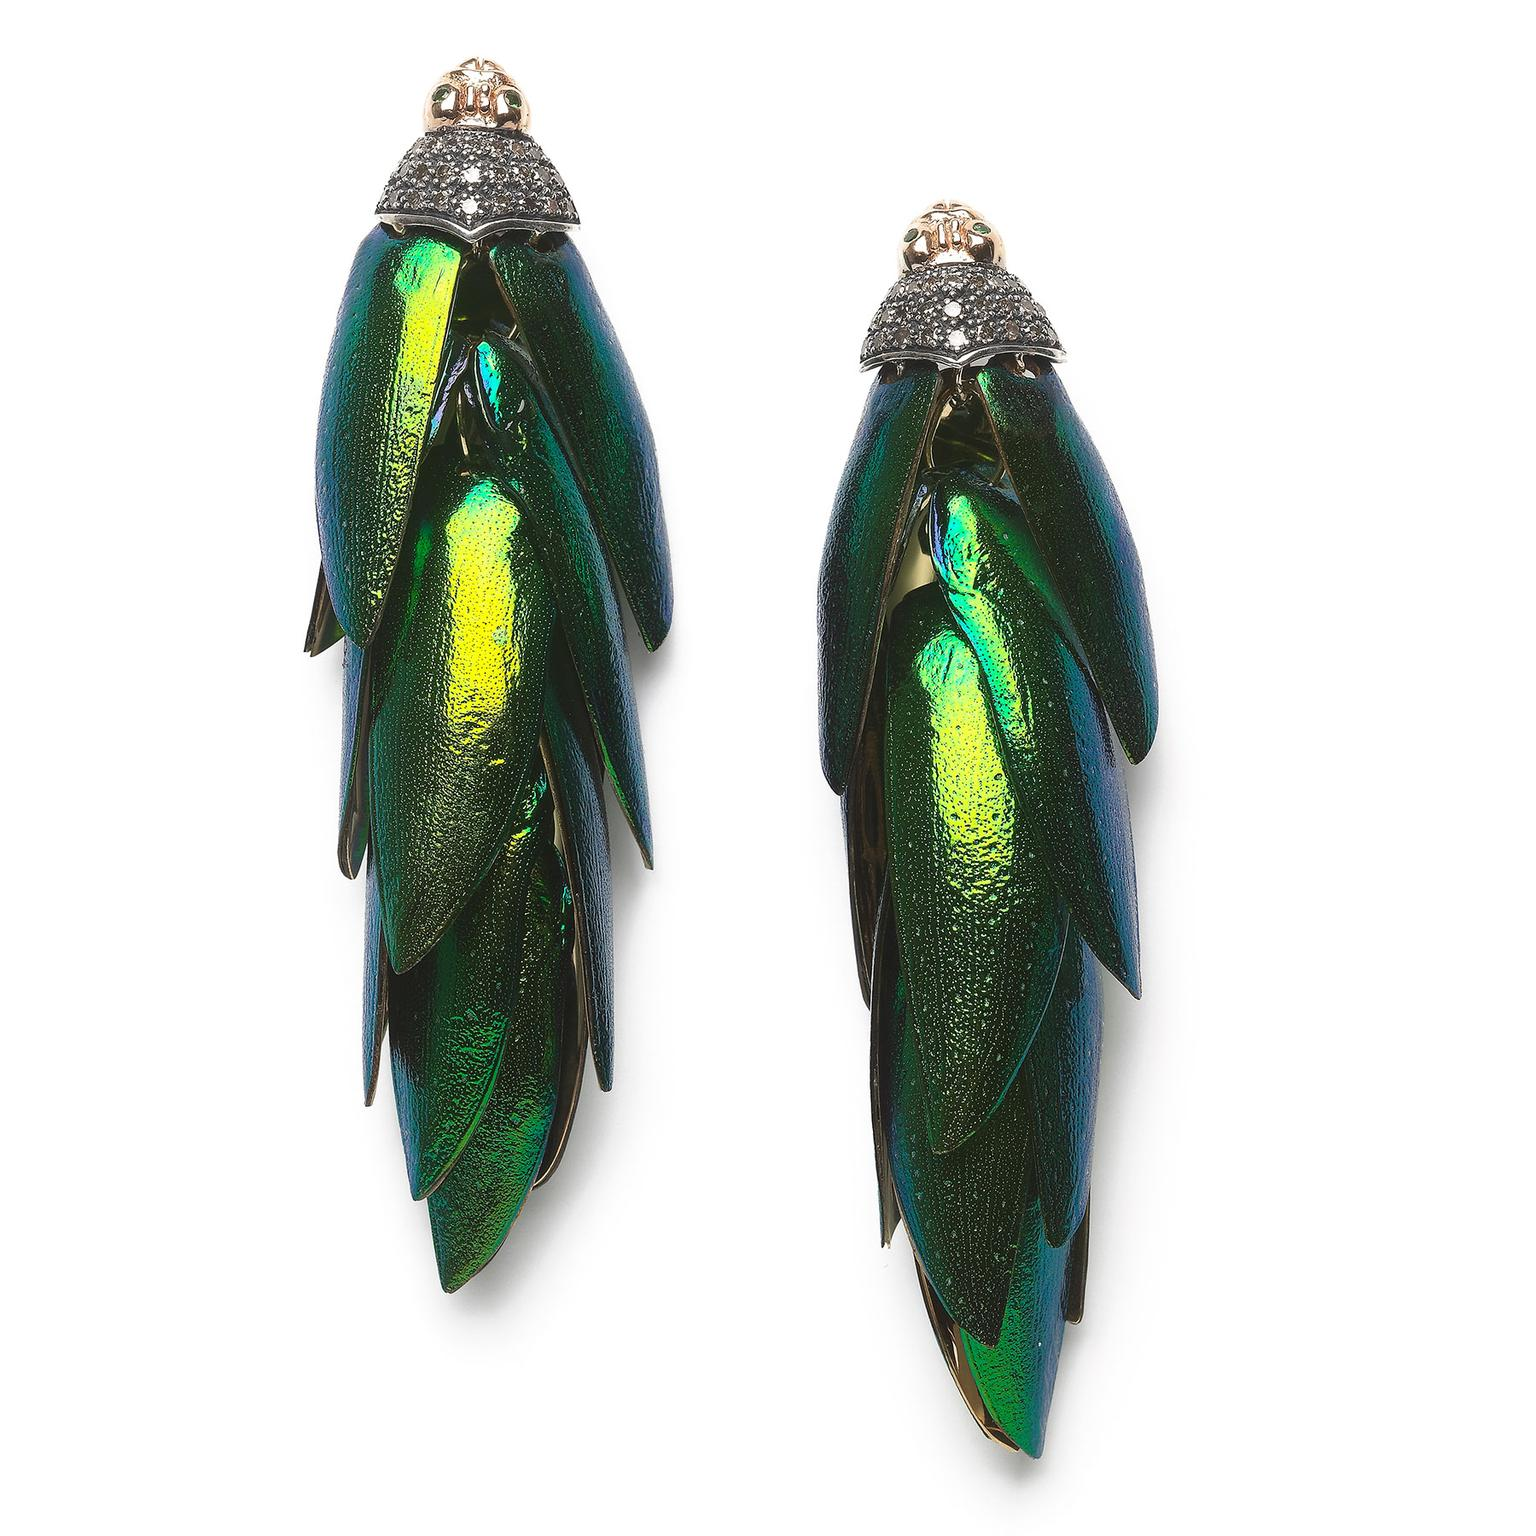 Bibi van der Velden Scarab bunch earrings in gold featuring authentic, ethically sourced beetle wings (£5,055).